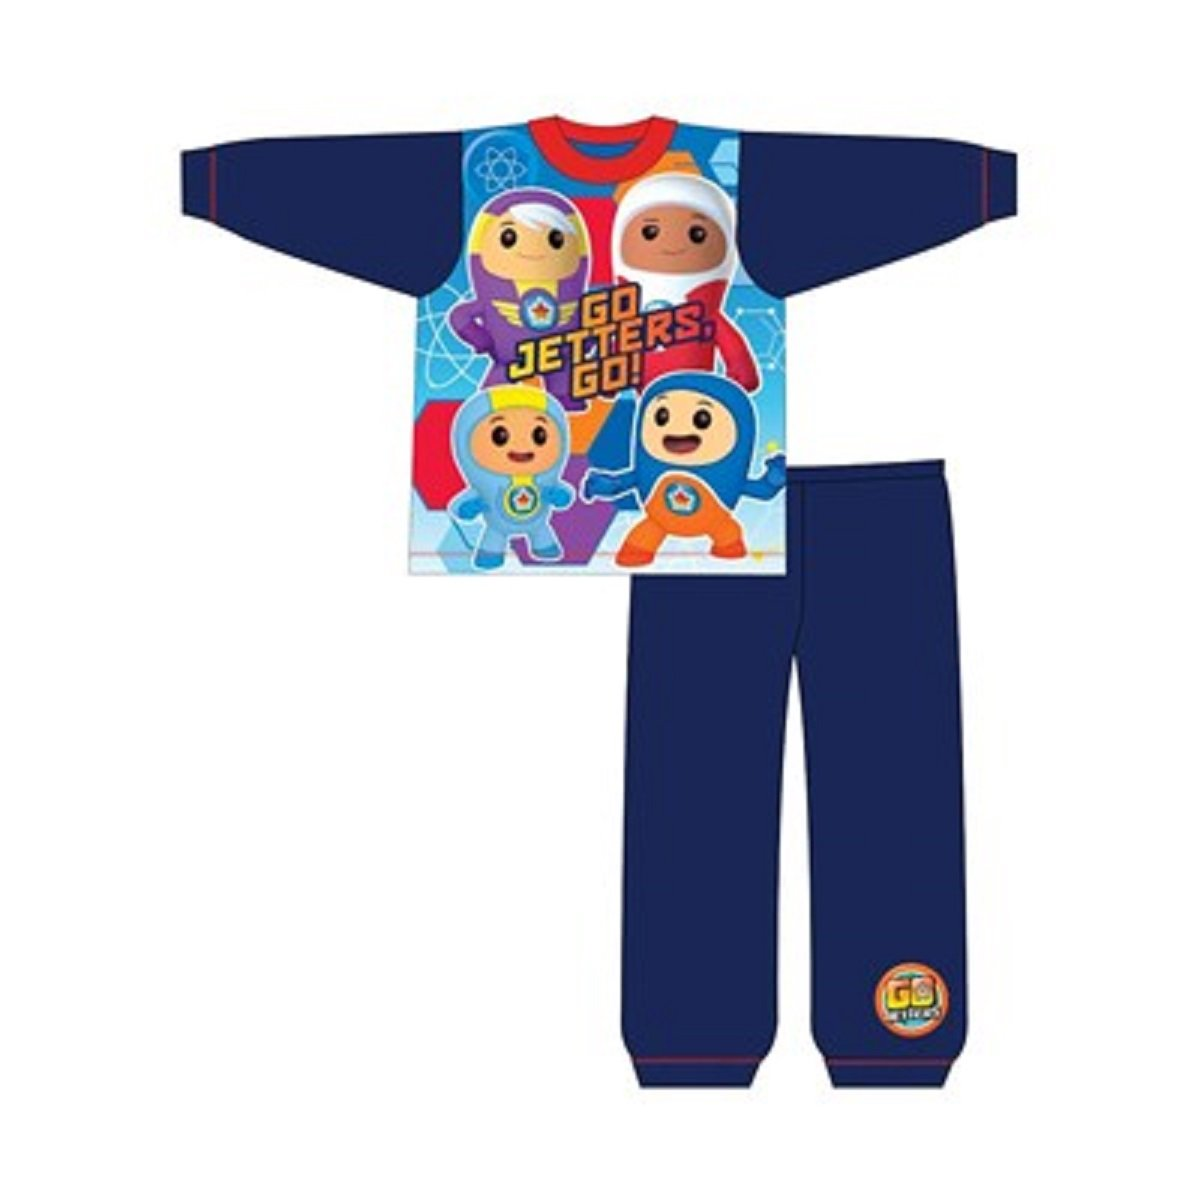 BOYS SESAME STREET THE FURCHESTER HOTEL PYJAMAS AGE 18-24 months to 4-5 years